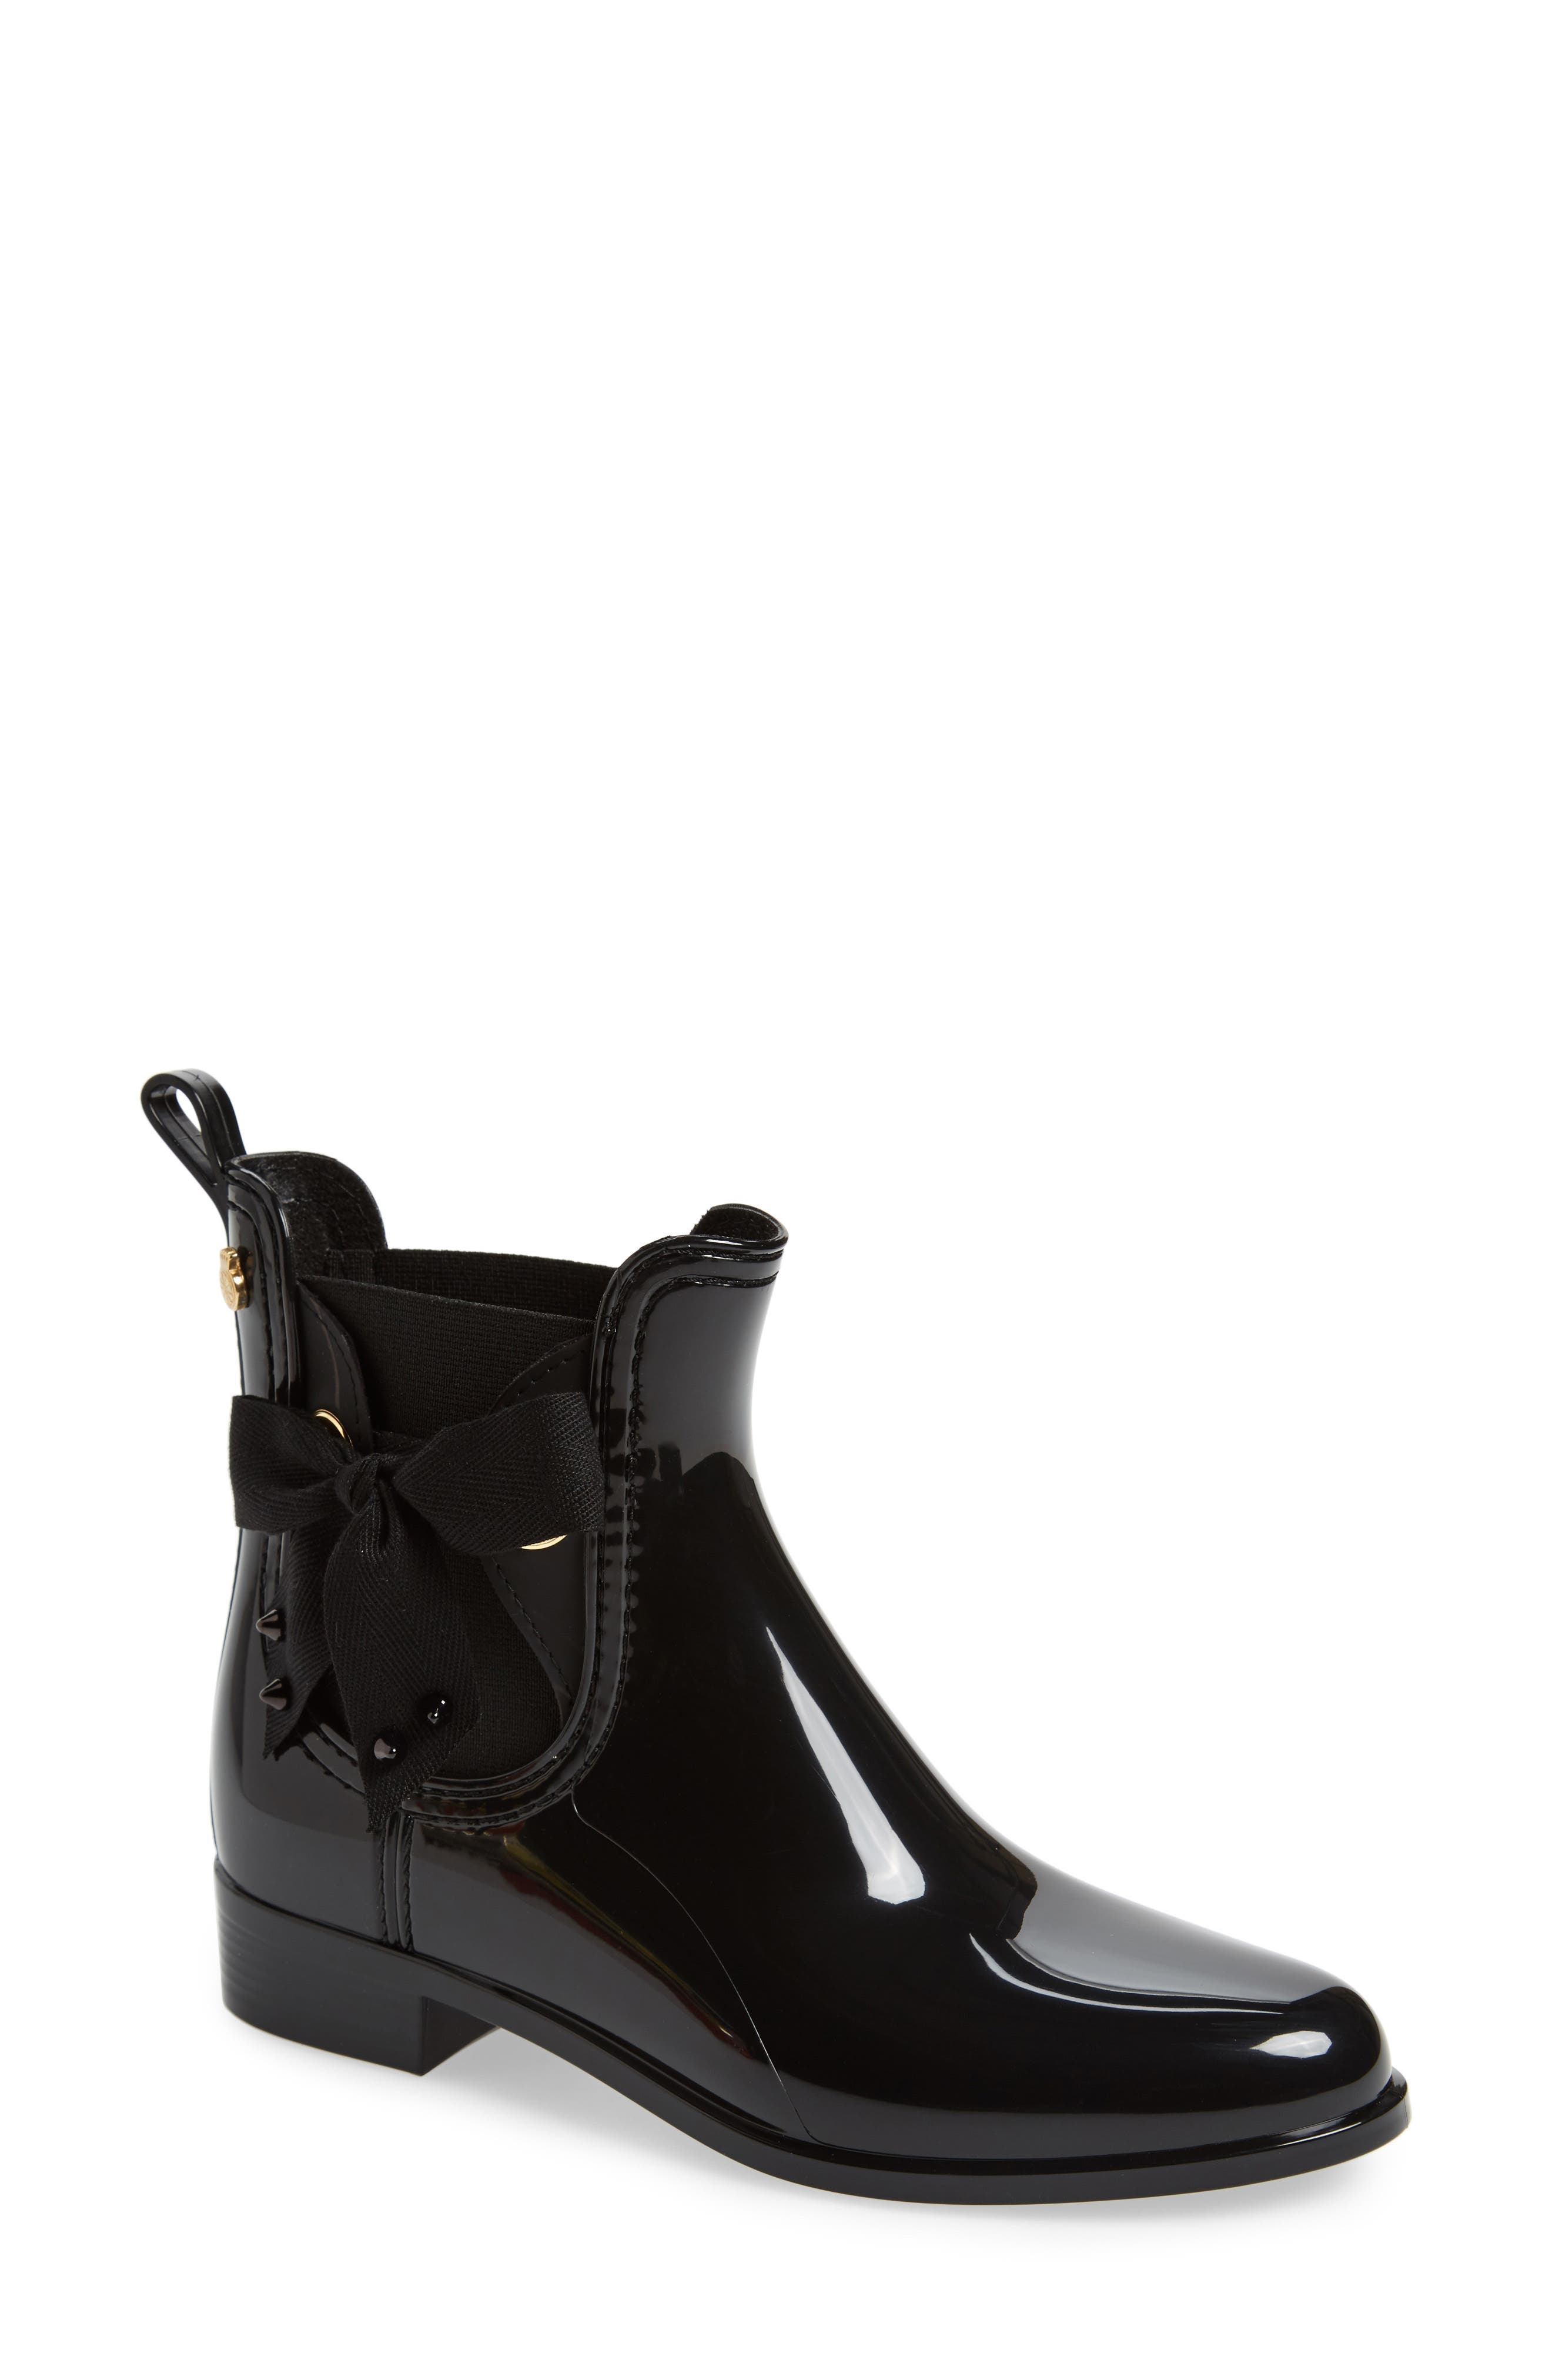 Haley Waterproof Chelsea Boot,                         Main,                         color, Black Gloss